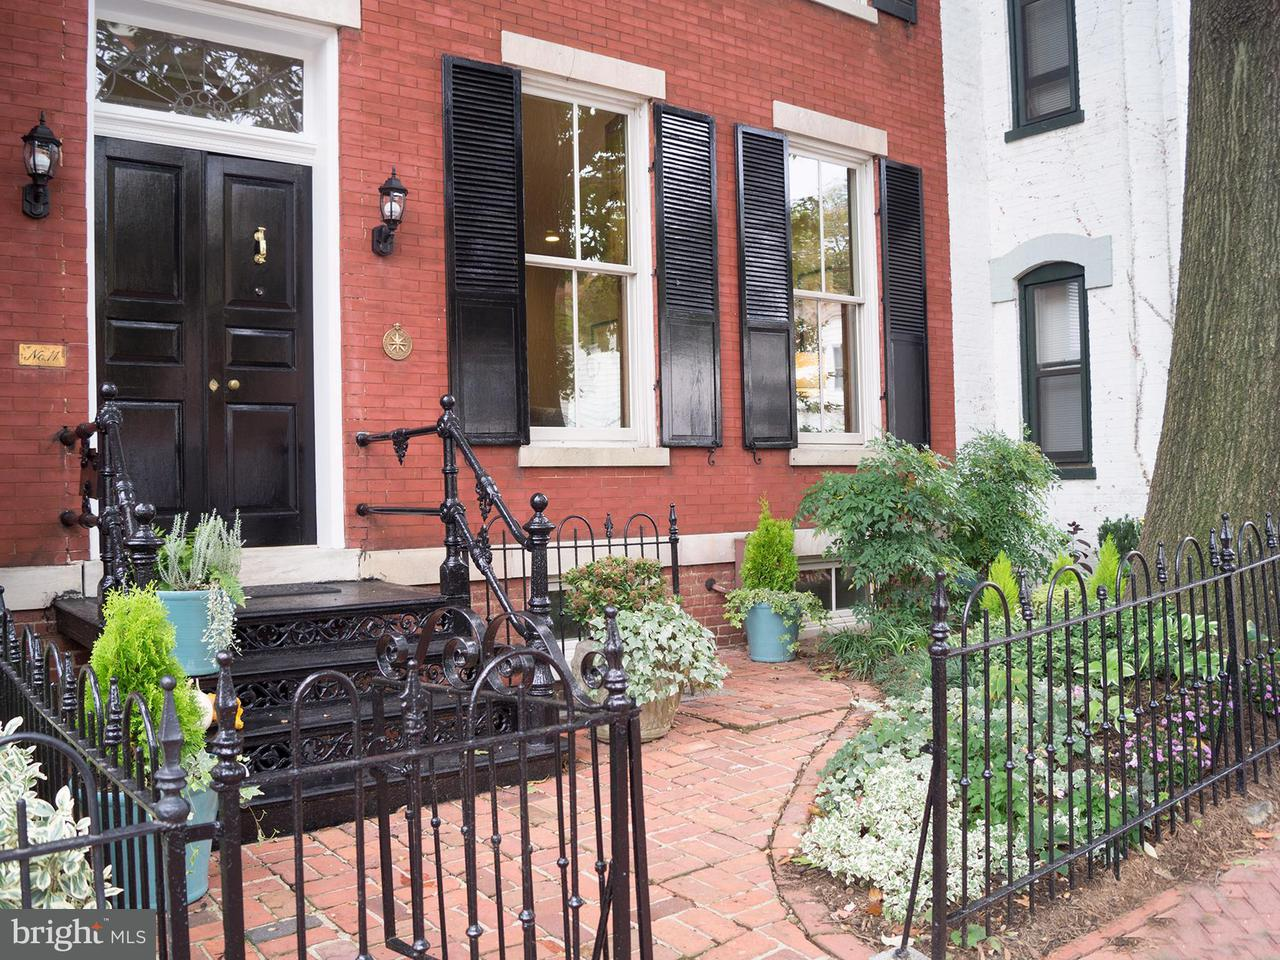 Townhouse for Sale at 11 4th St Ne 11 4th St Ne Washington, District Of Columbia 20002 United States